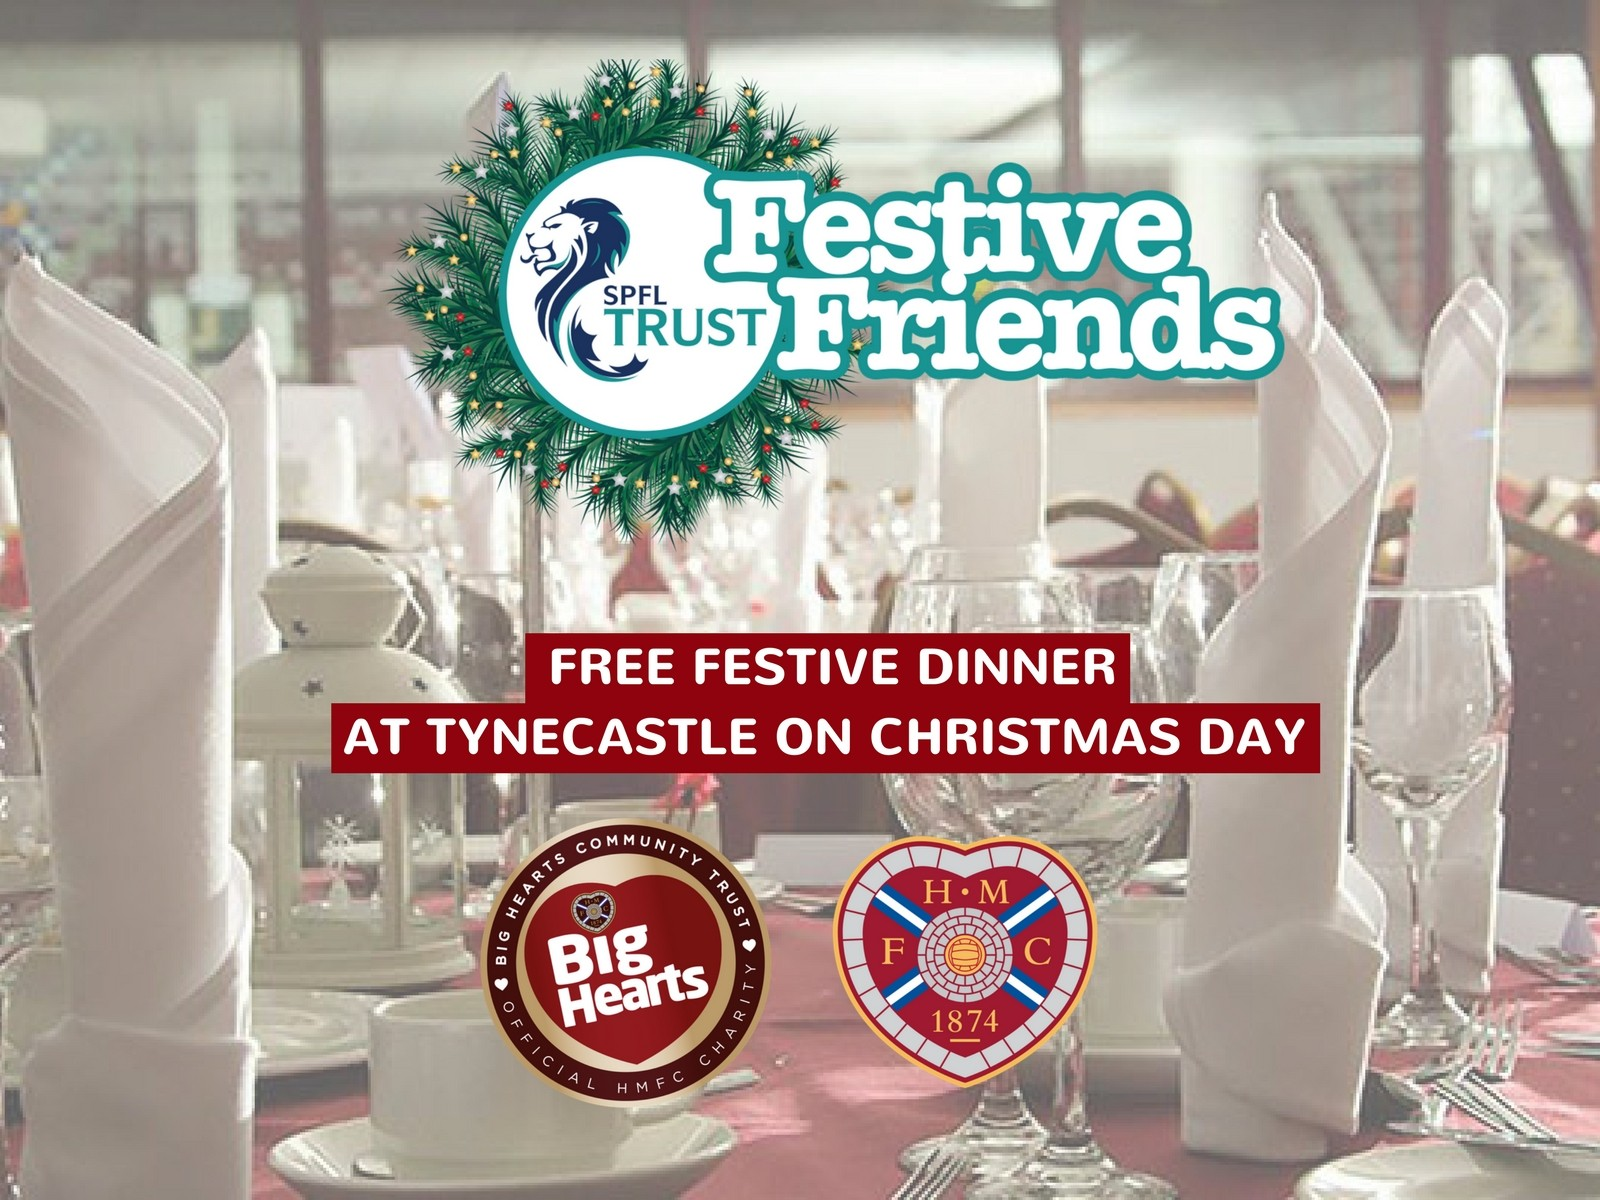 » Festive Friends supporting Tynecastle's Christmas Day Dinner